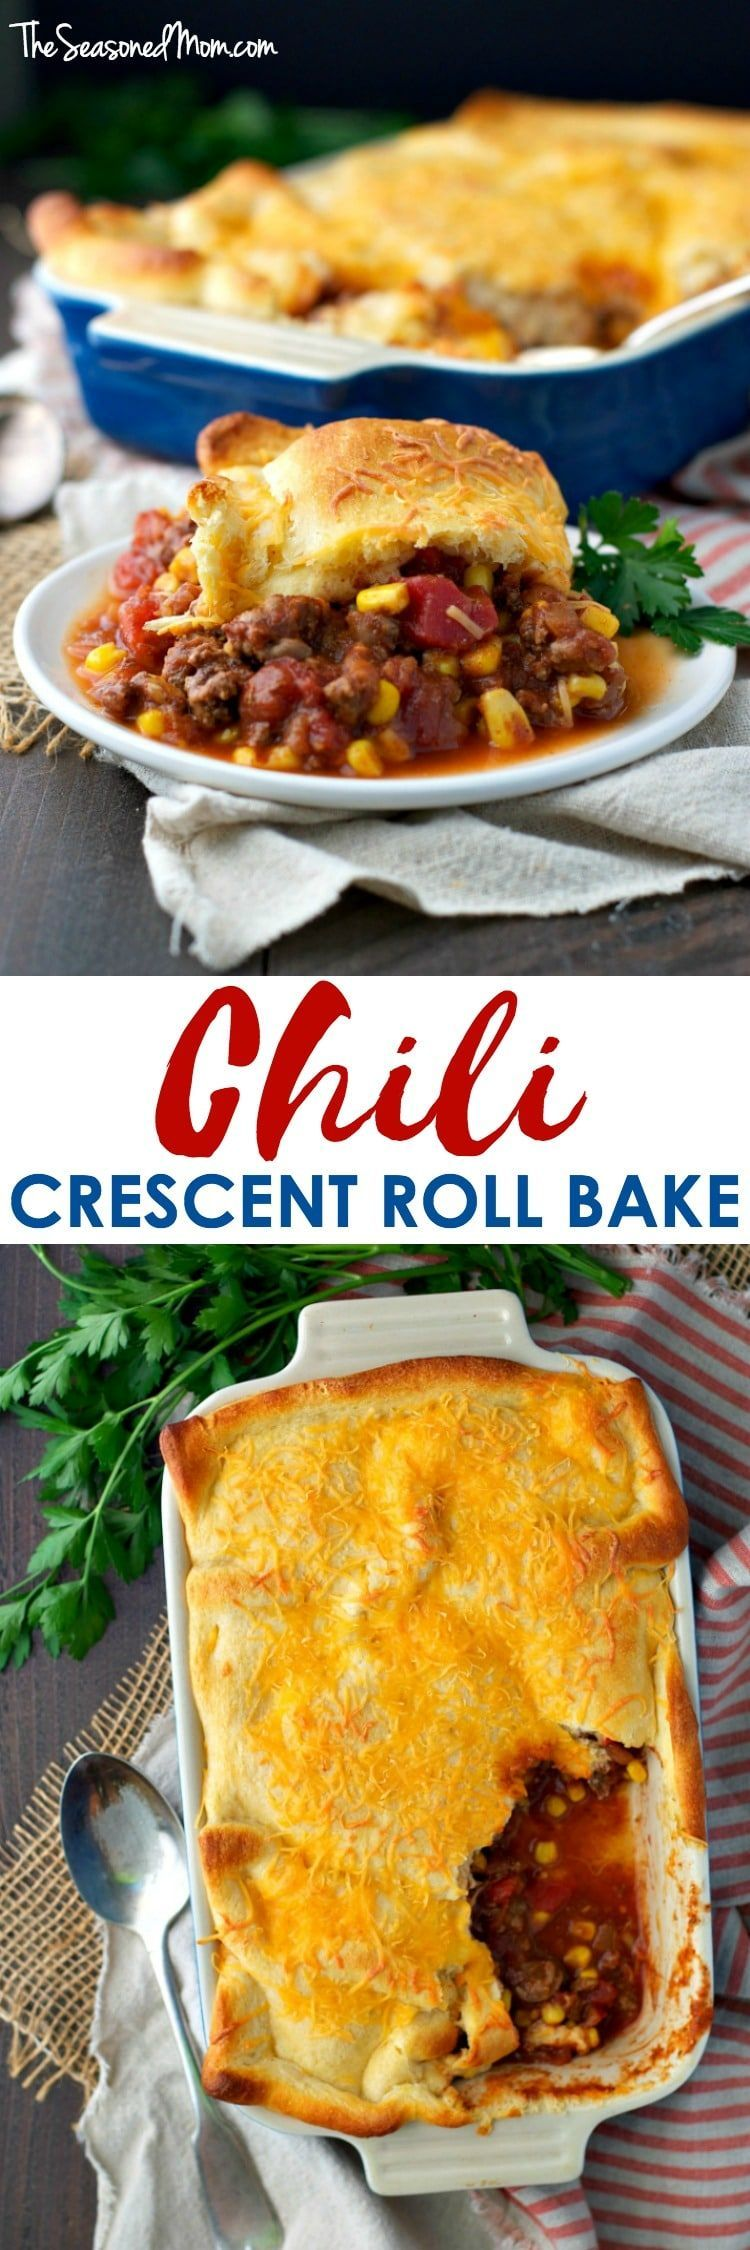 Photo of Easy Chili Crescent Roll Bake-Easy Chili Crescent Roll Bake …